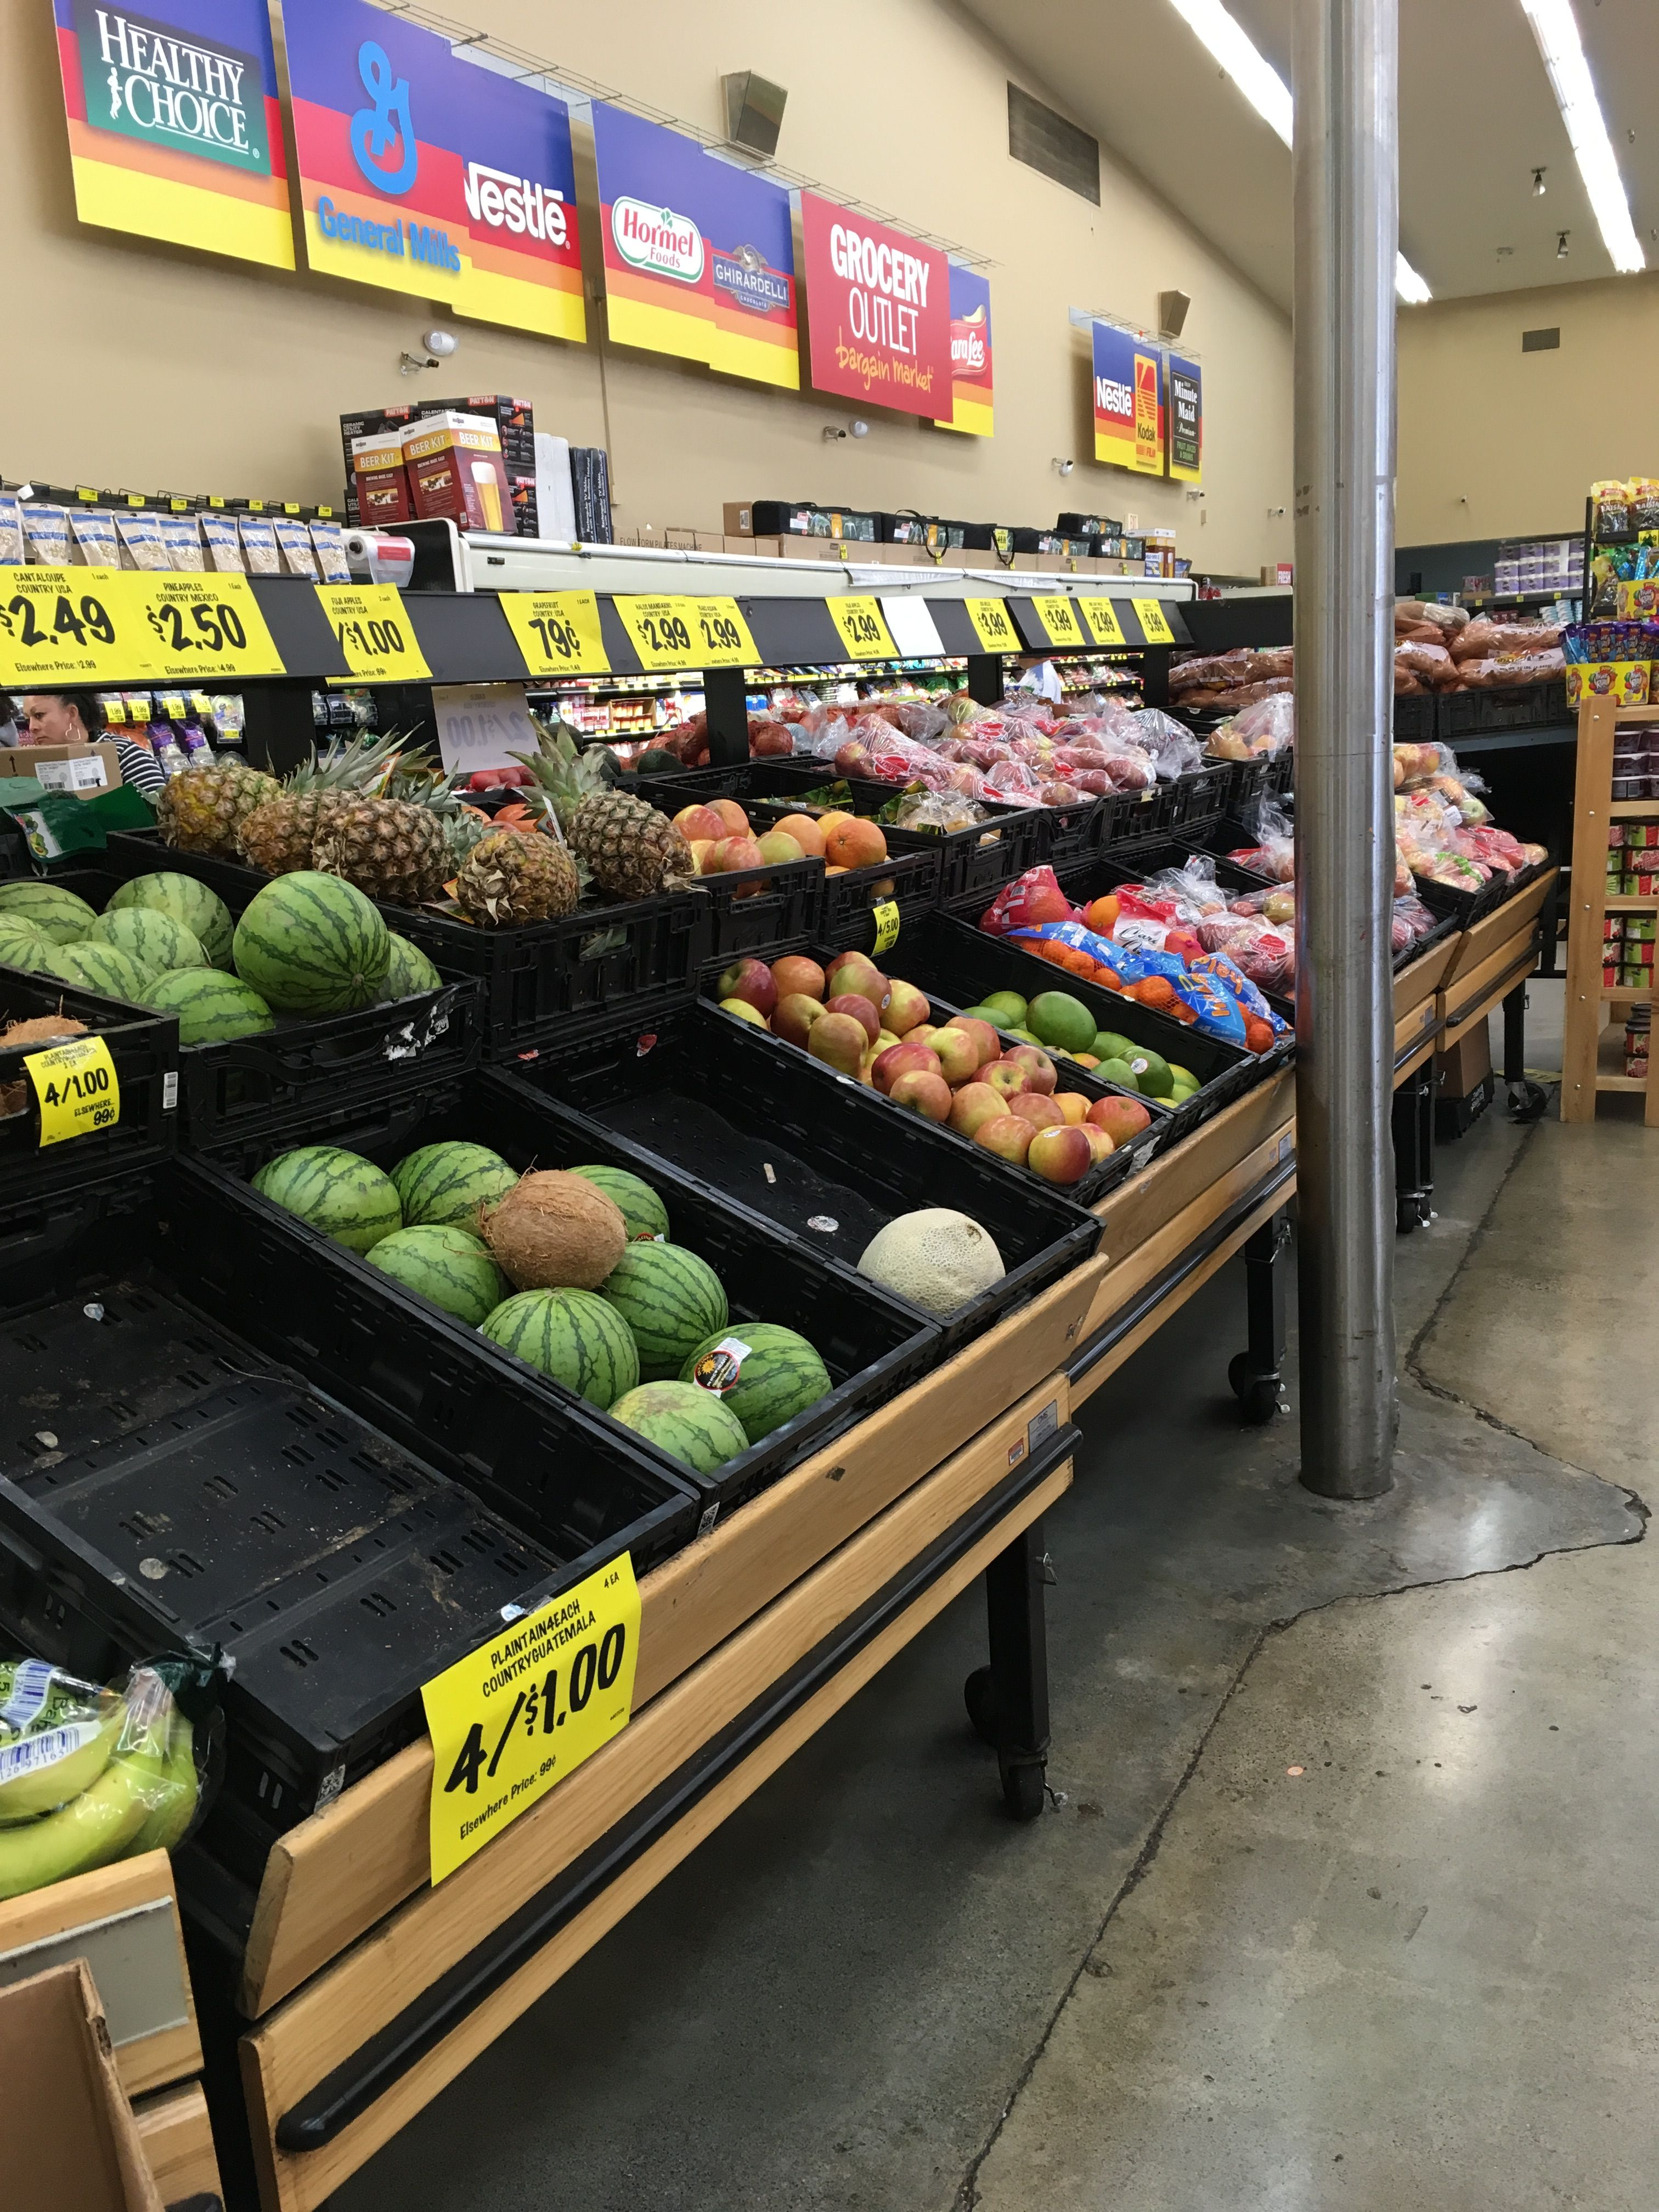 Grocery outlet euro tables could go under glazing on